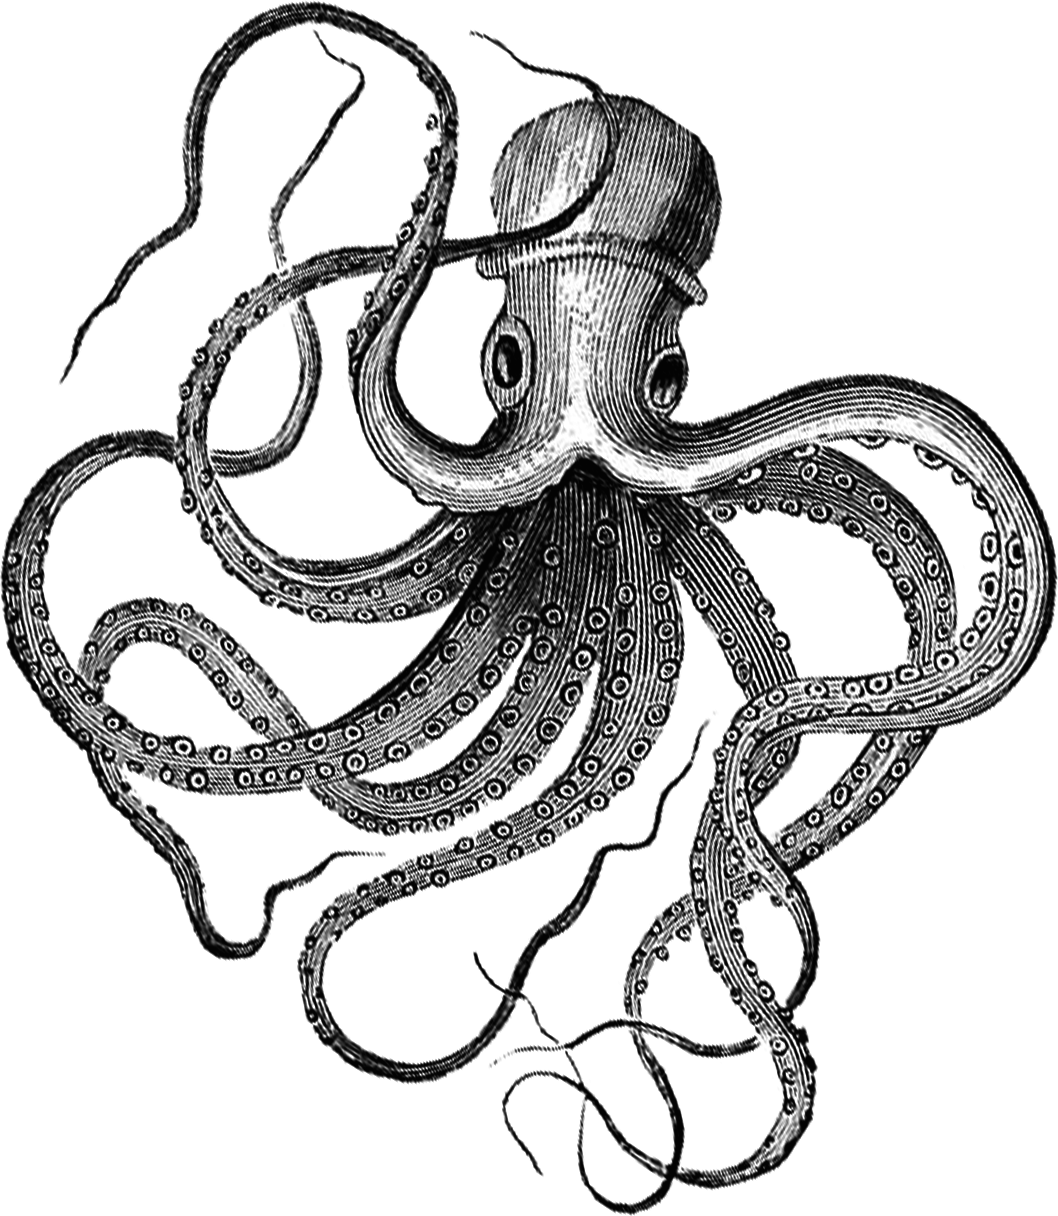 Clipart octopus mad. Ink drawing at getdrawings